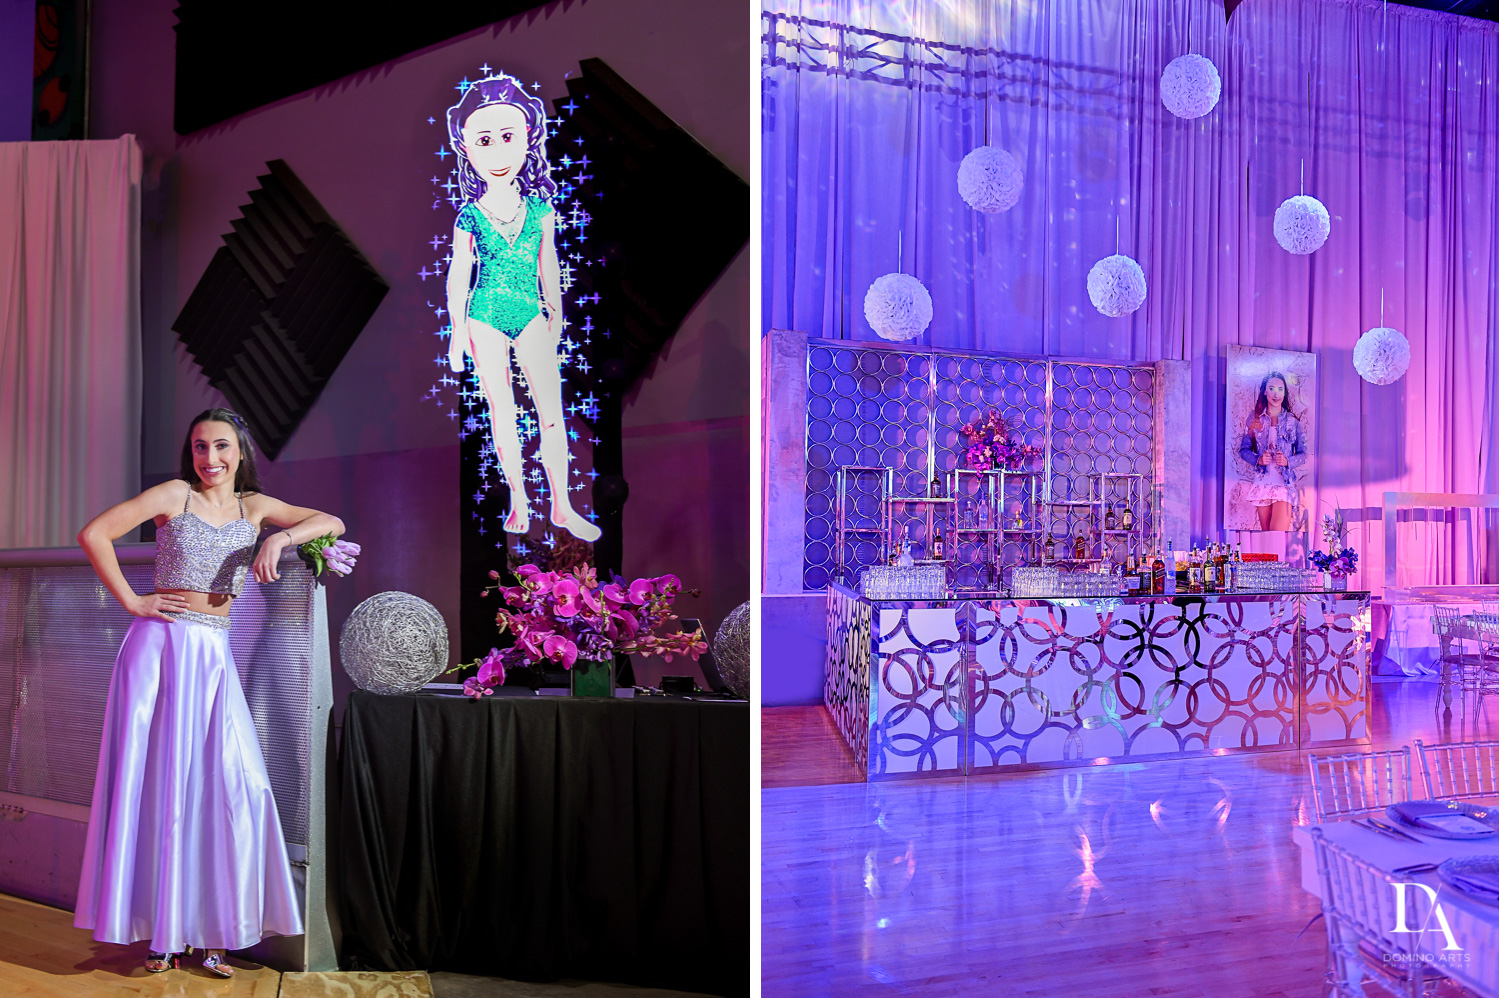 hologram and great decor at Gymnastics Theme Bat Mitzvah Photography at Xtreme Action Park by Domino Arts